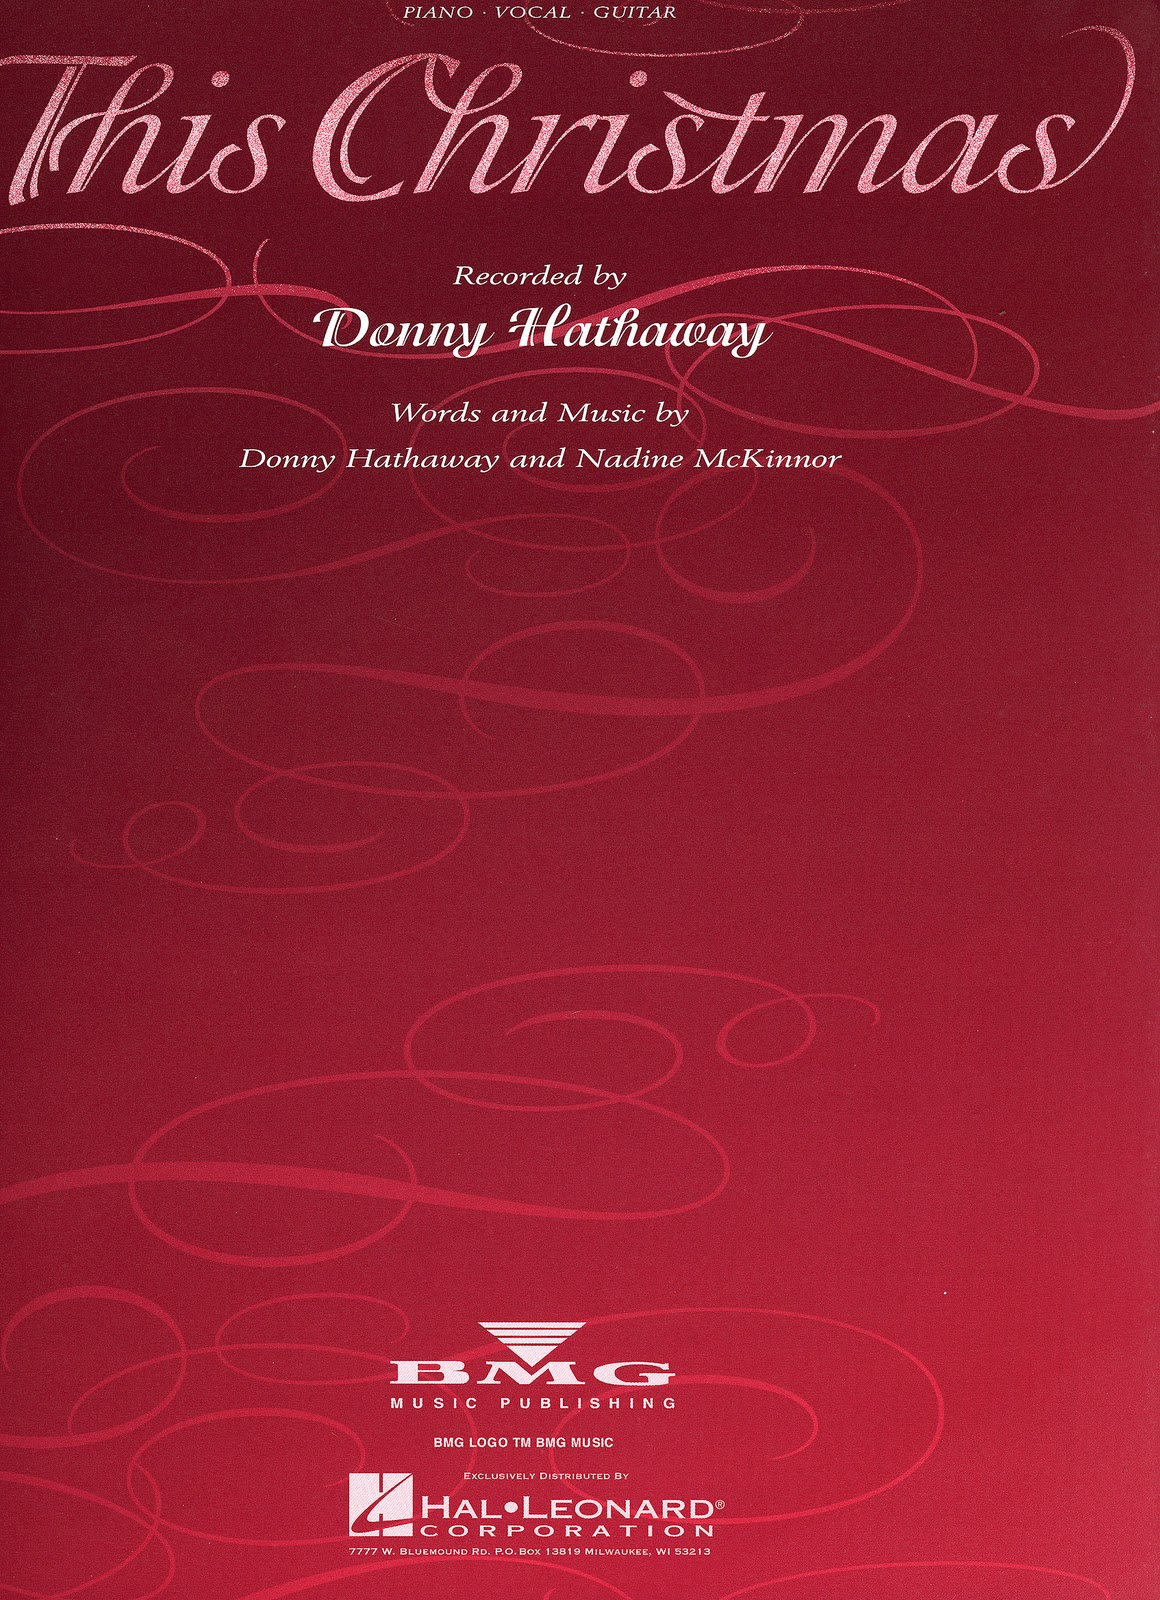 donny hathaway  this christmas  music sheet